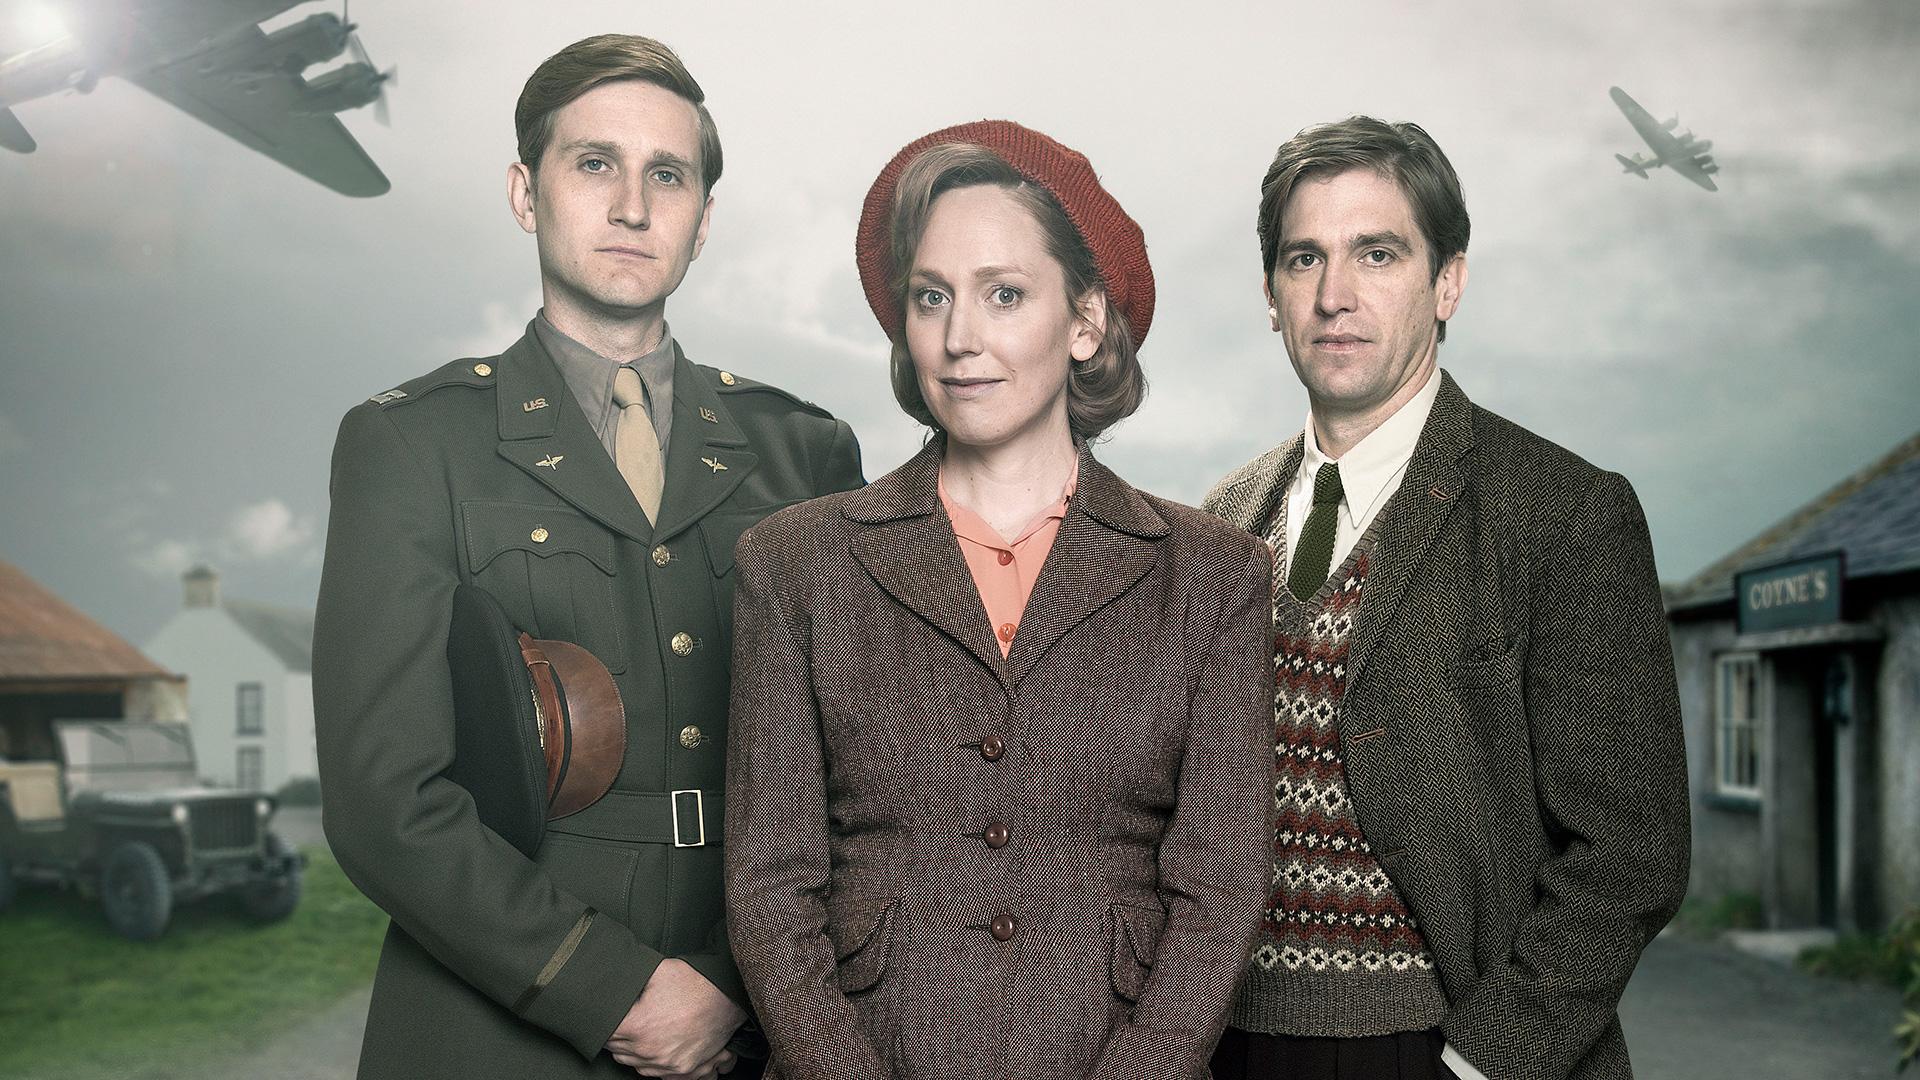 Shown from left to right: Captain Ronald Dreyfuss (AARON STATON), Rose Coyne (HATTIE MORAHAN) and Michael Coyne (OWEN MCDONNELL)